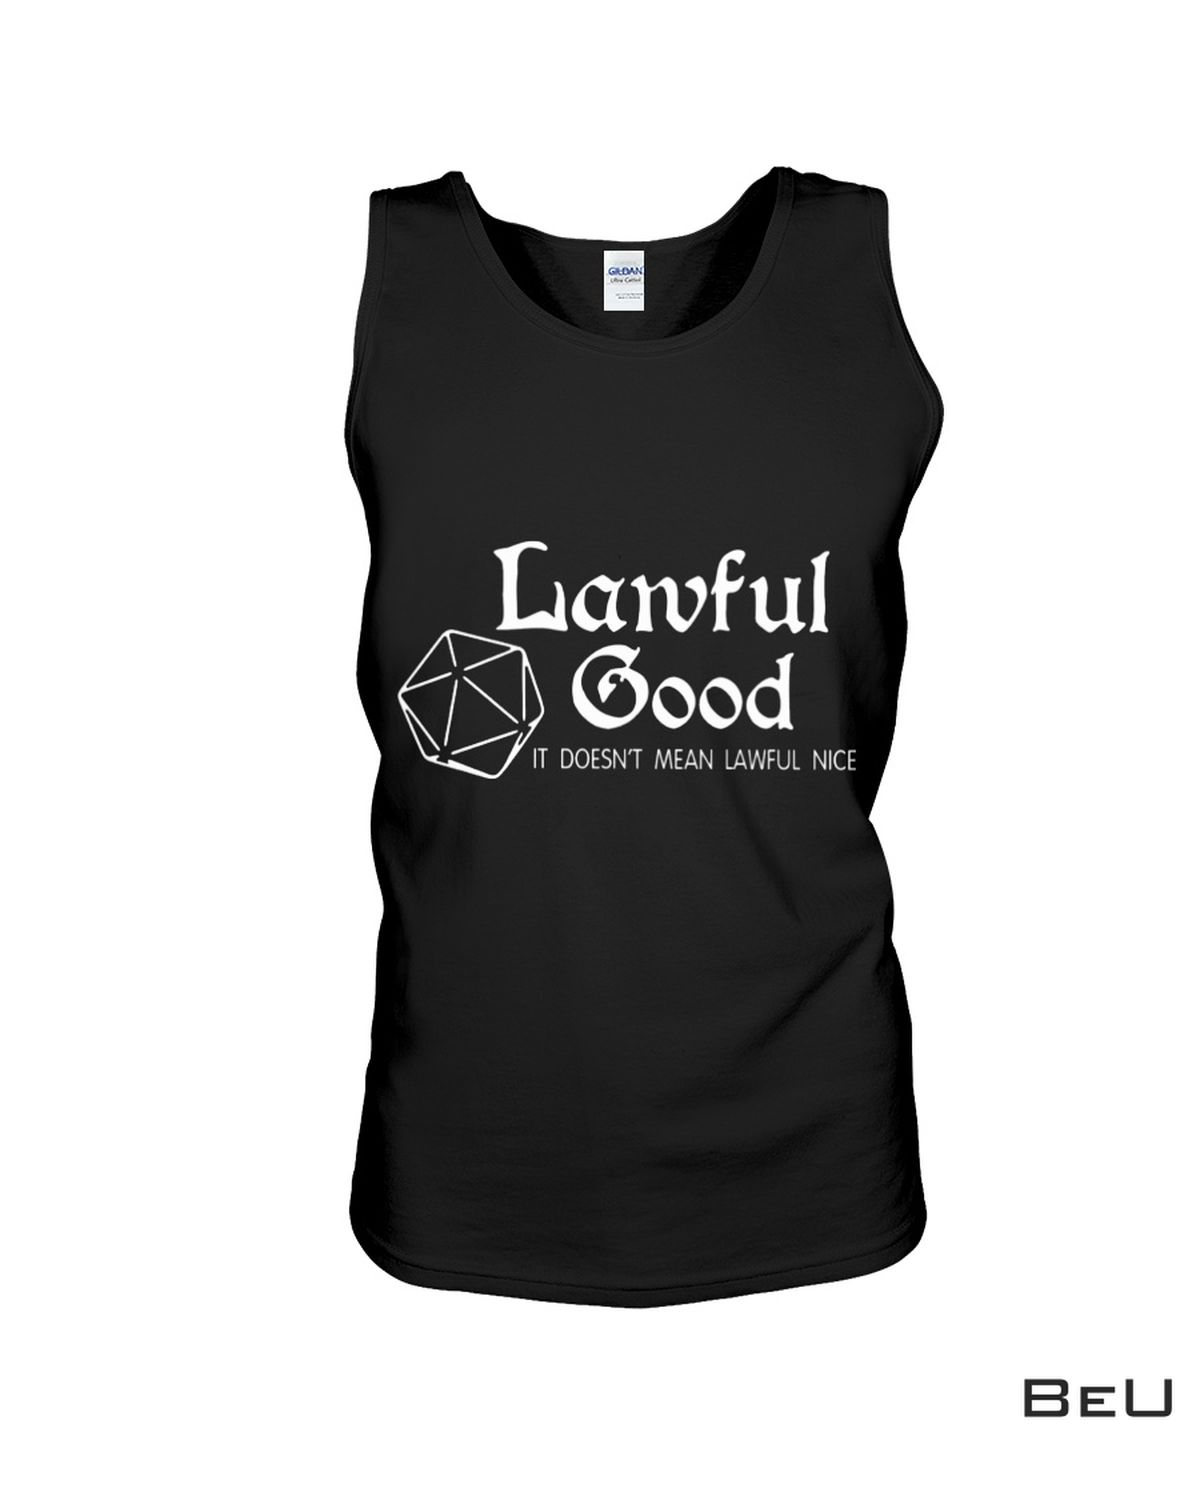 Lawful Good Doesn't Mean Lawful Nice Shirt c